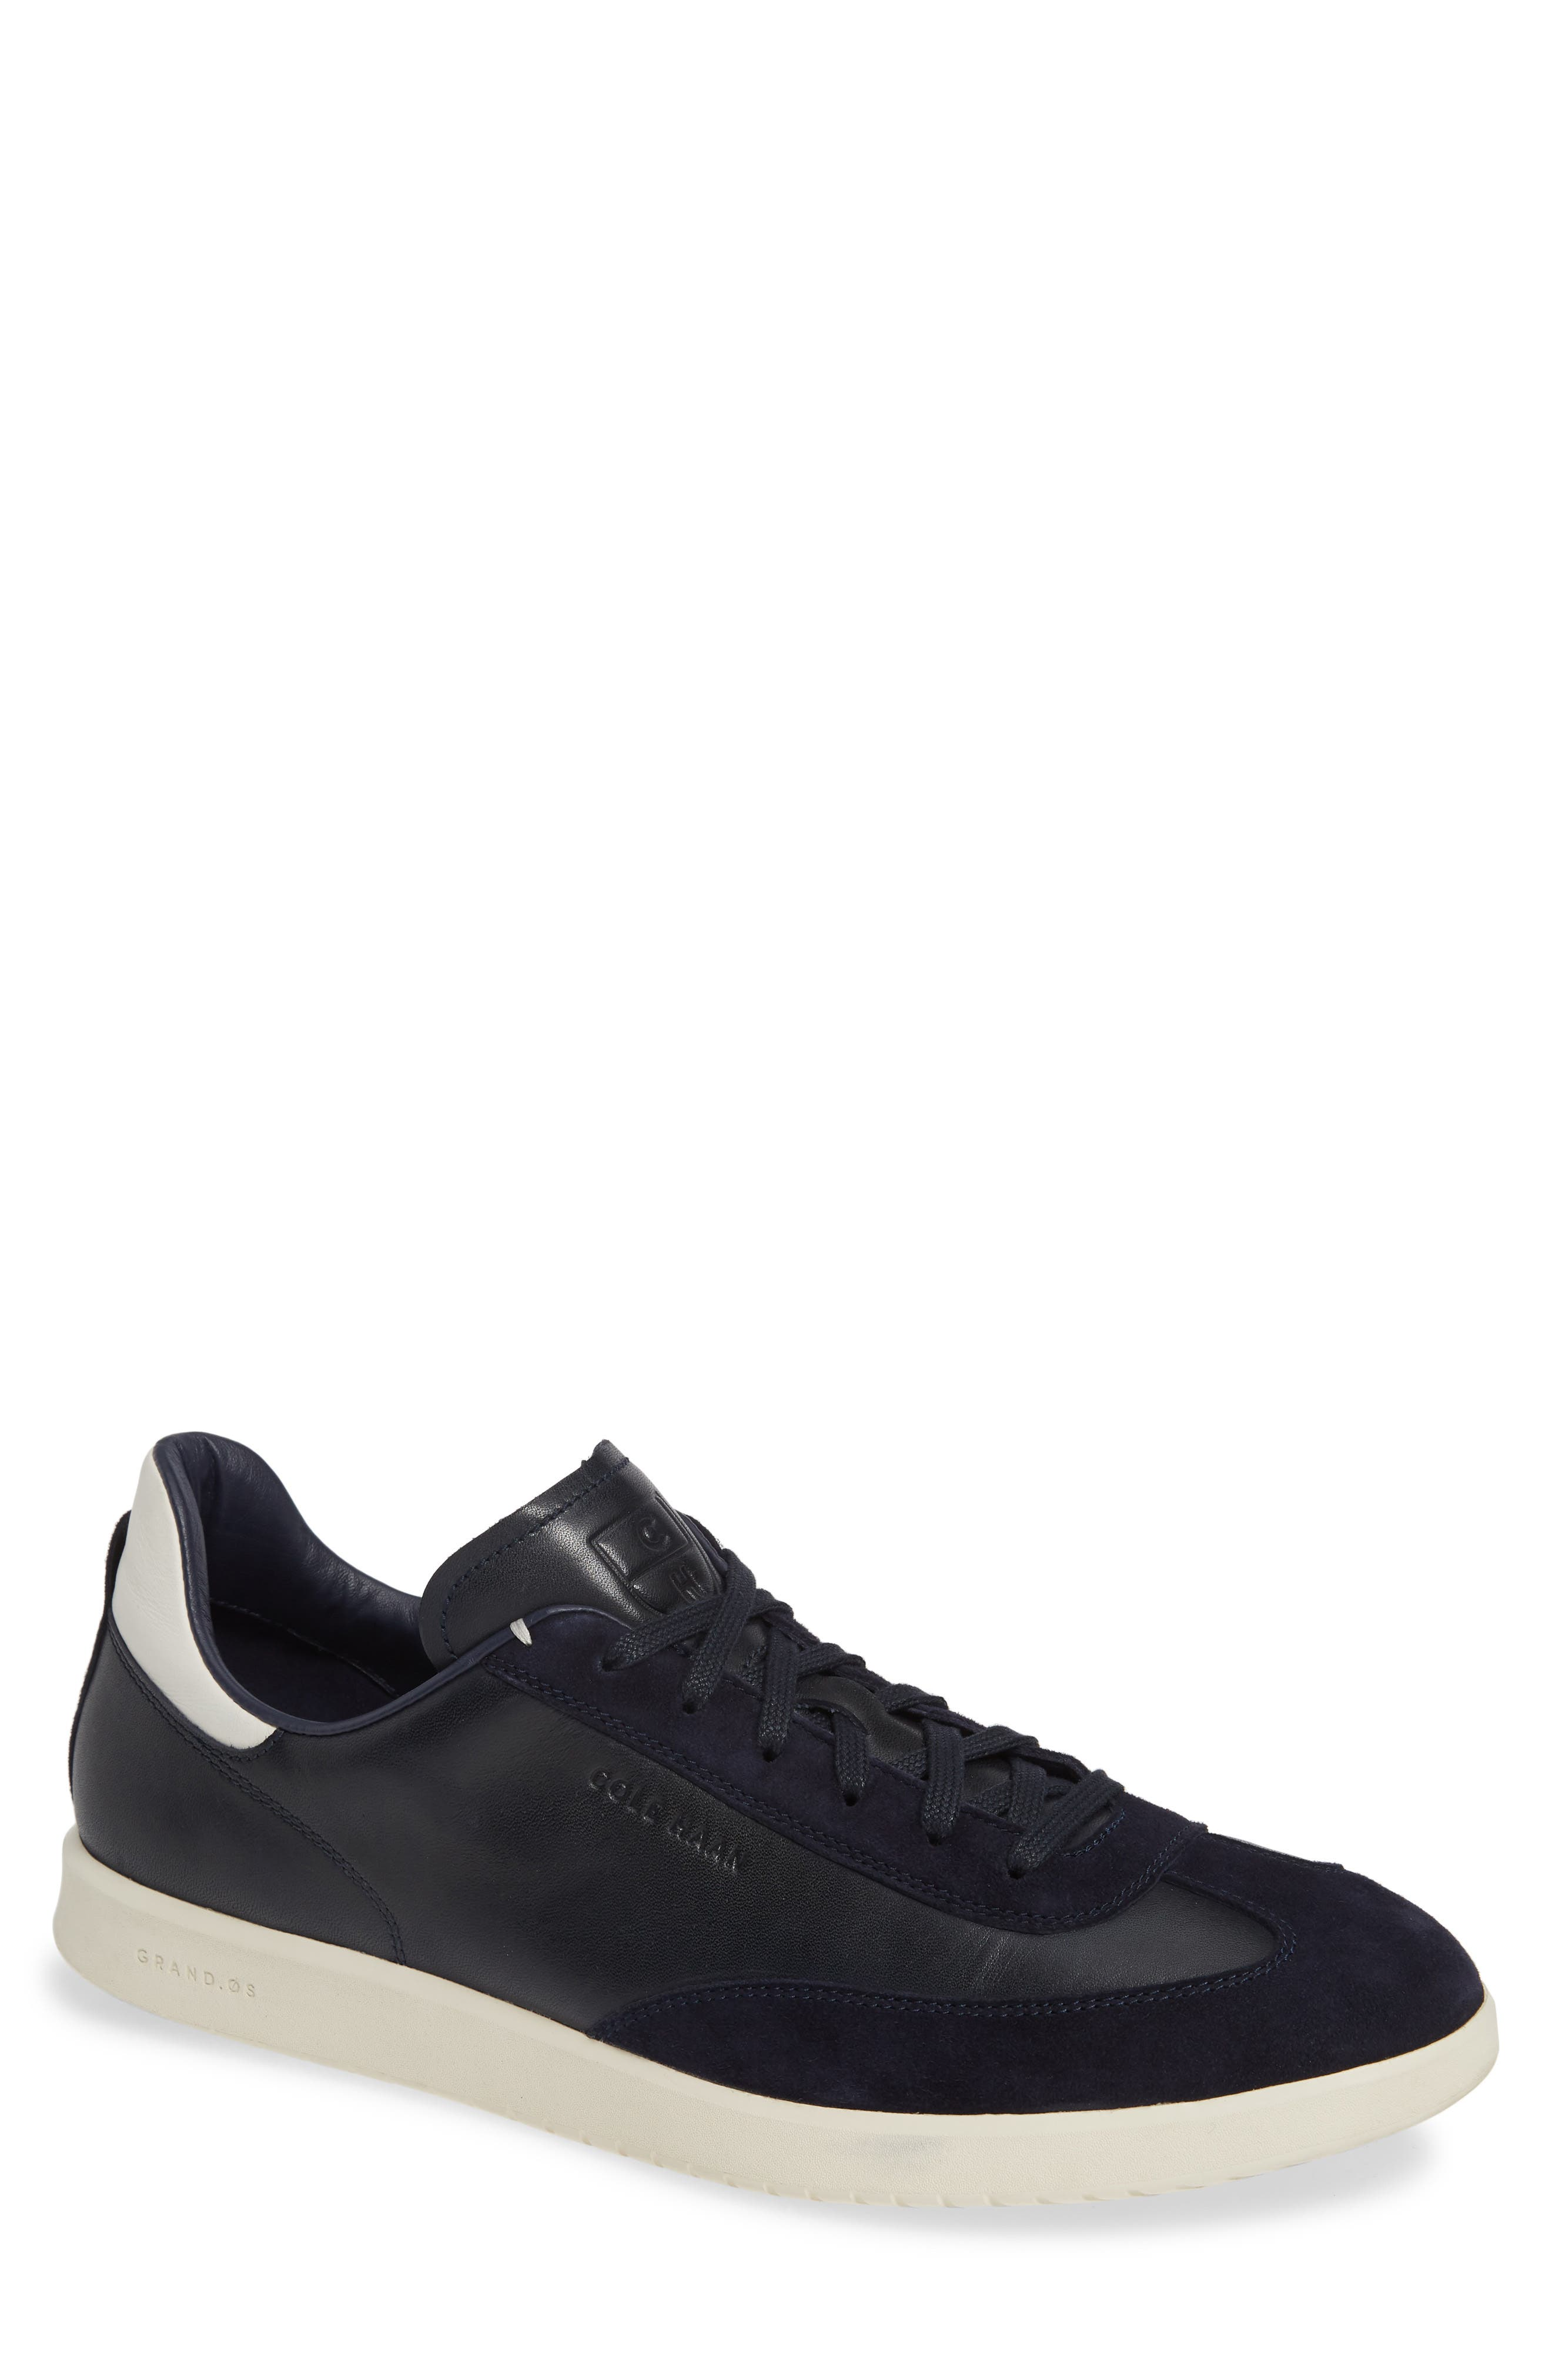 COLE HAAN GrandPro Turf Sneaker, Main, color, NAVY INK LEATHER